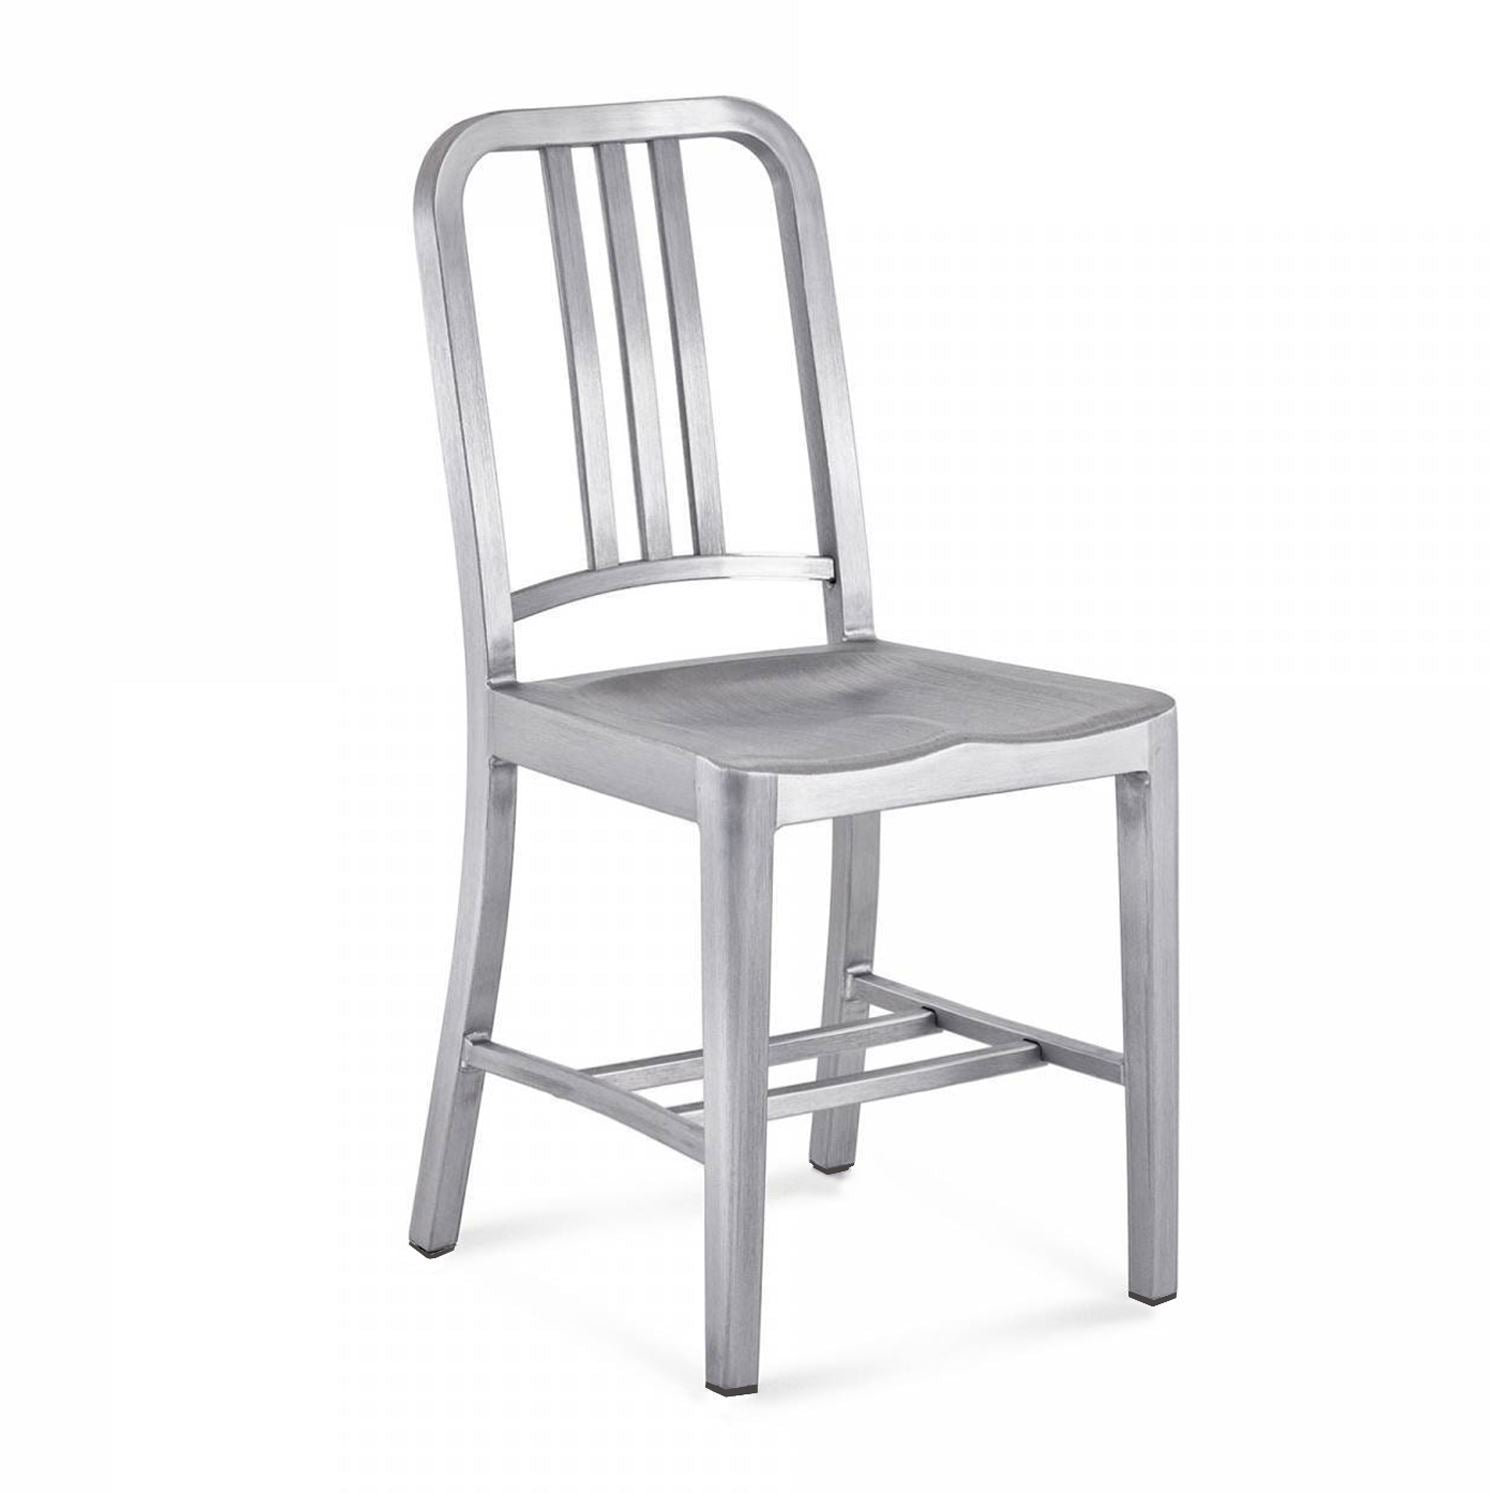 Emeco Style Navy Chair (Brushed Aluminium) - Nathan Rhodes Design